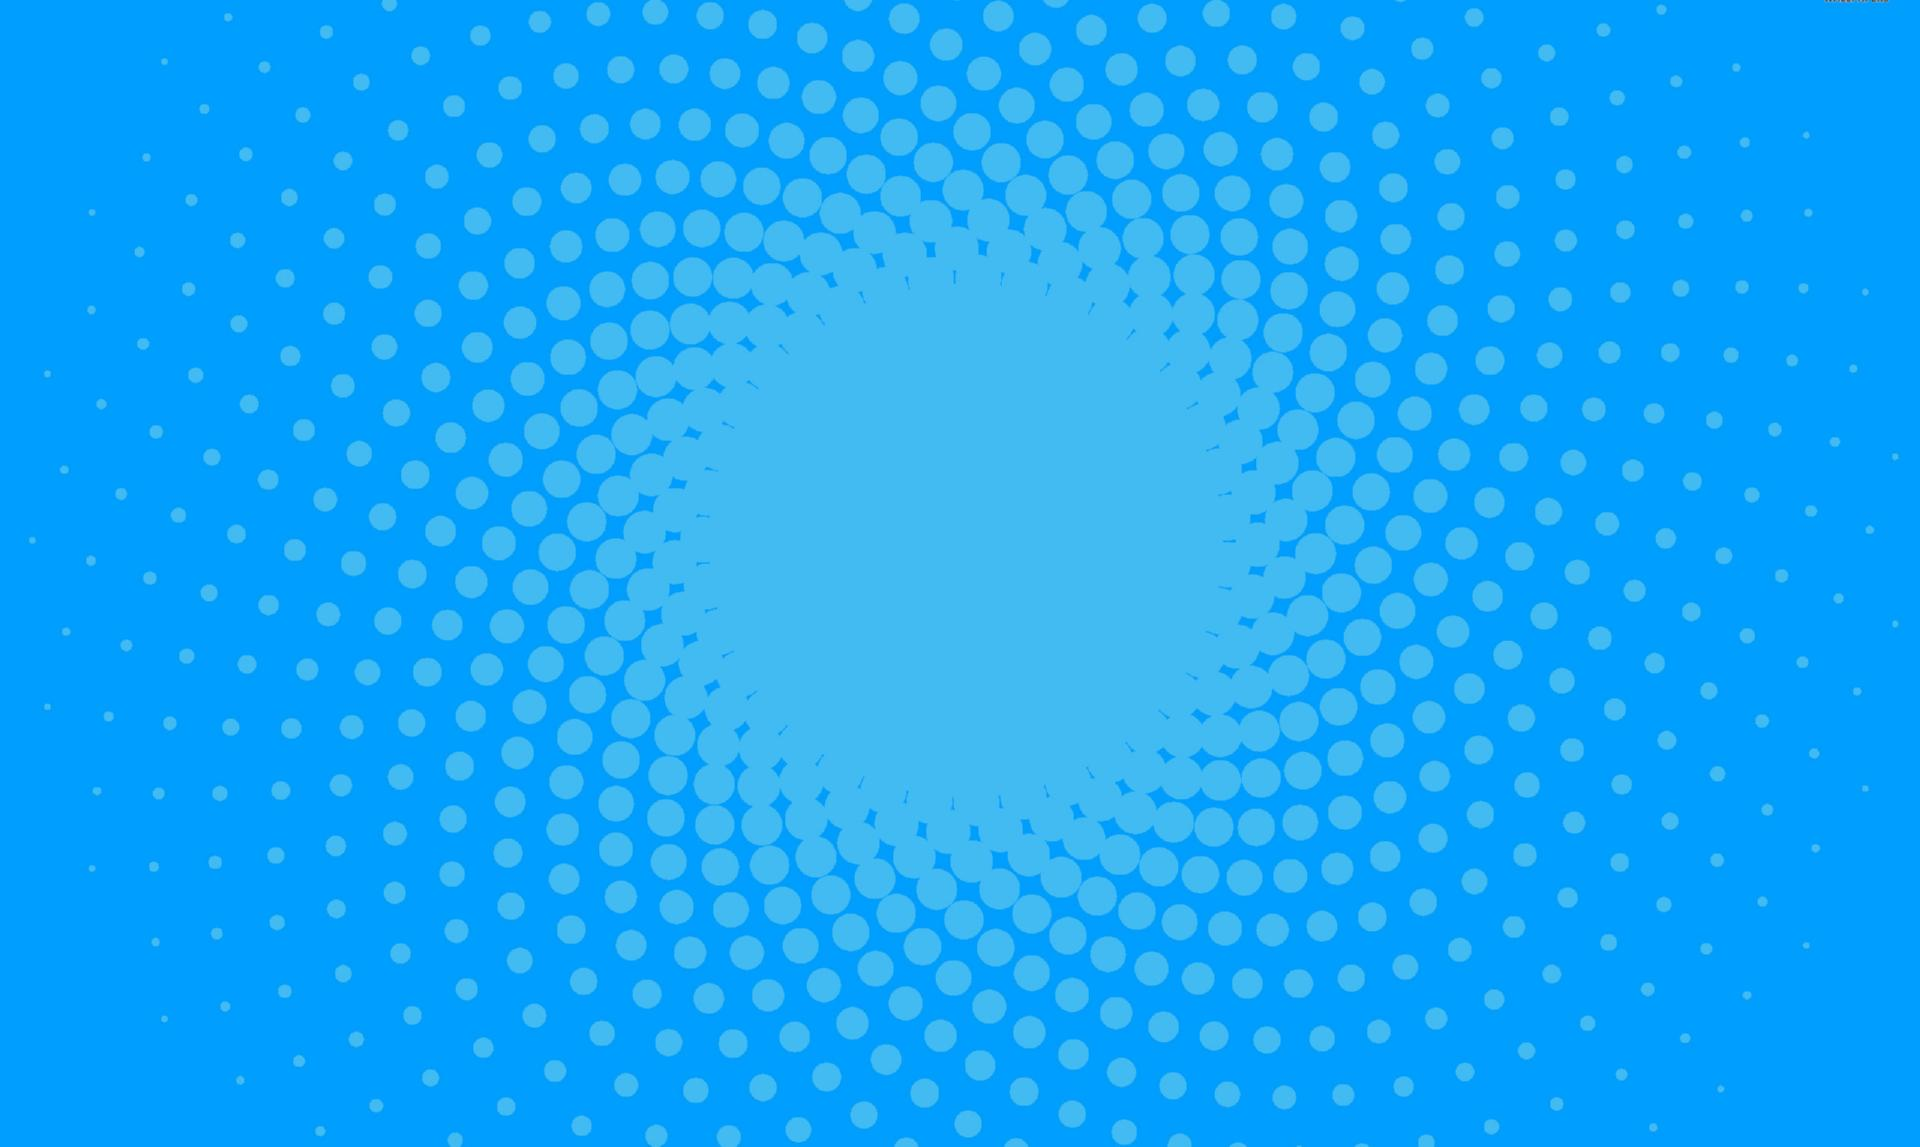 Blue circles wallpapers HD quality